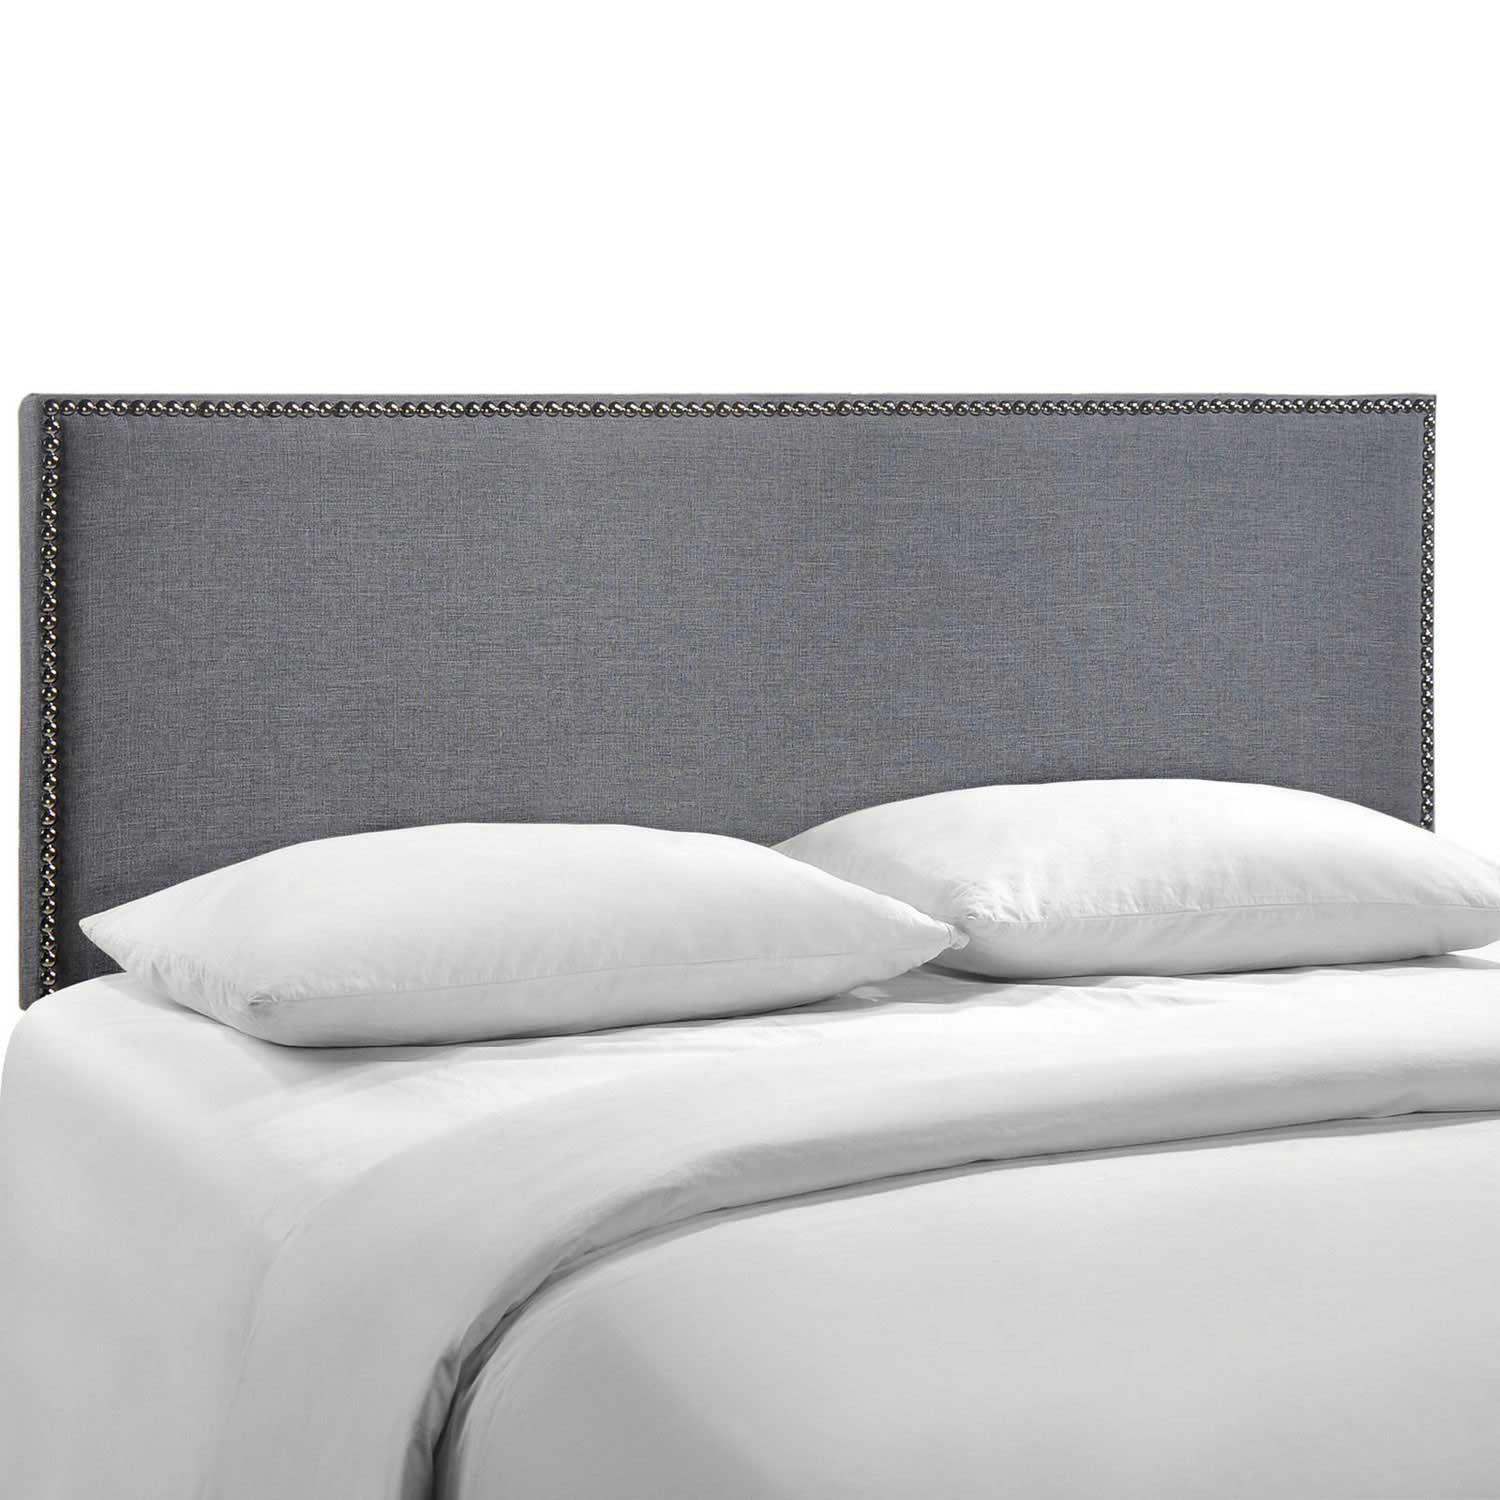 Modway Region Queen Nailhead Upholstered Headboard - Smoke